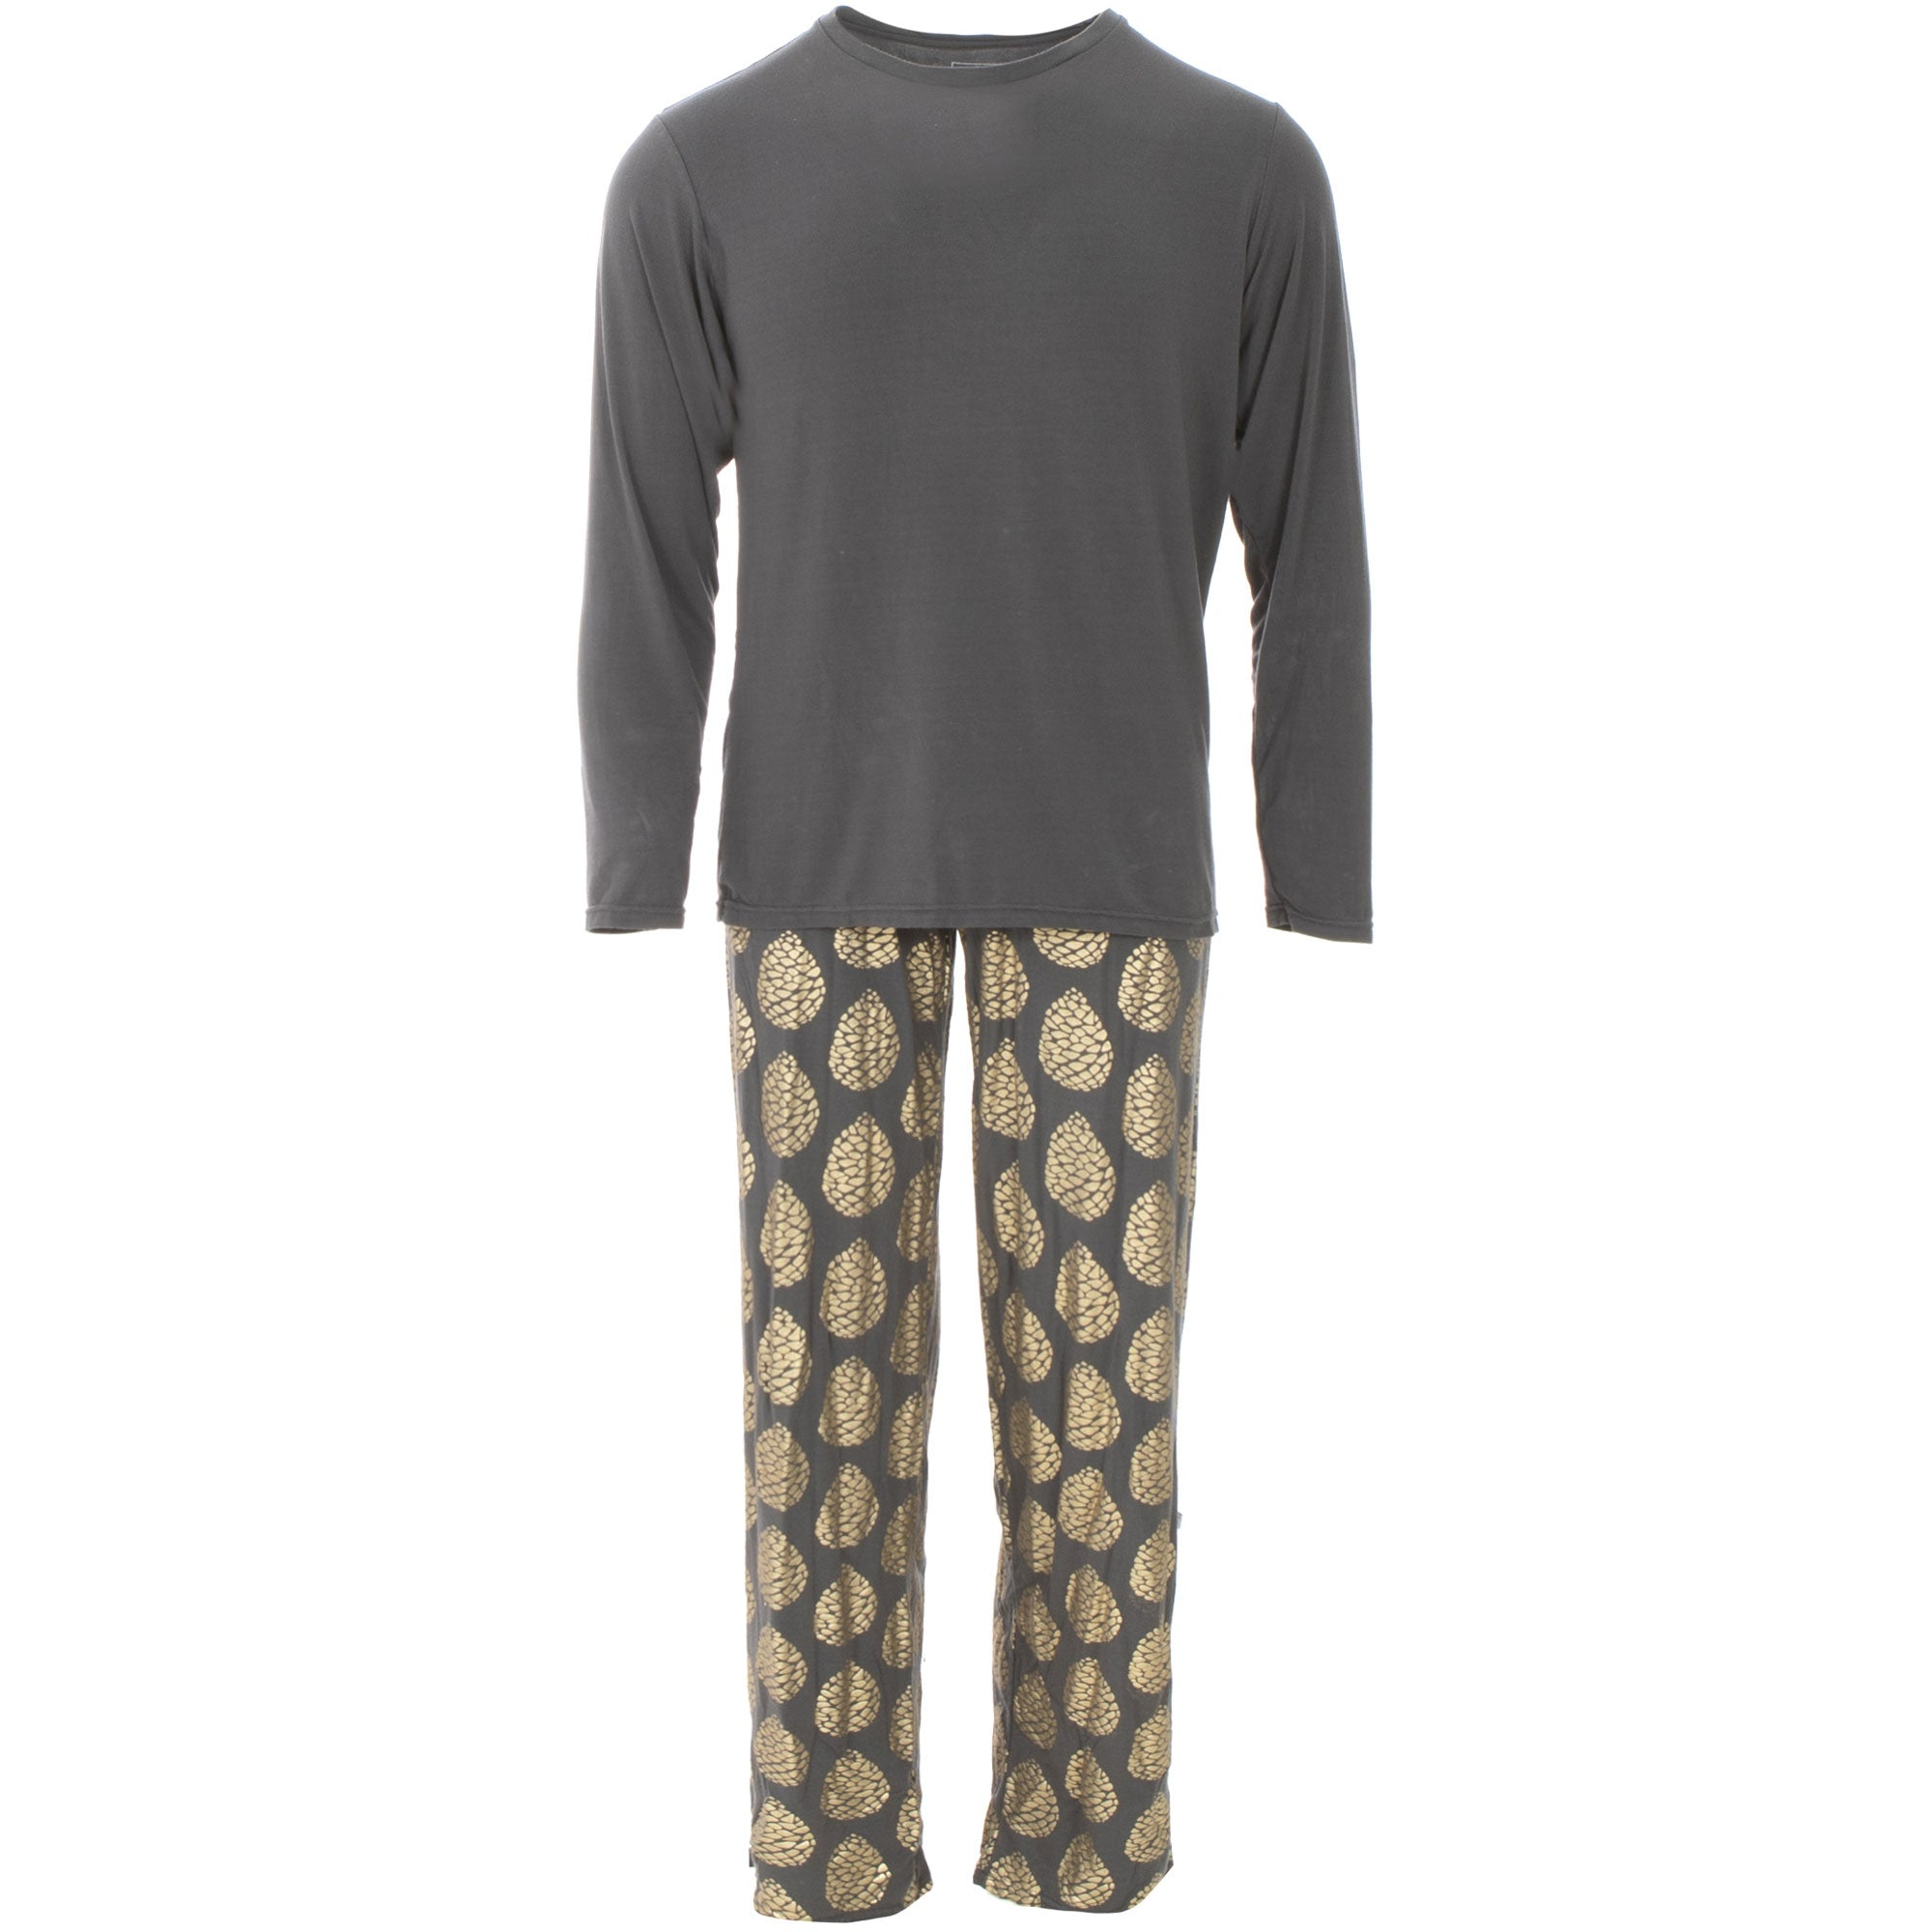 KicKee Pants Mens Long Sleeve Pajama Set - Pewter Pinecones